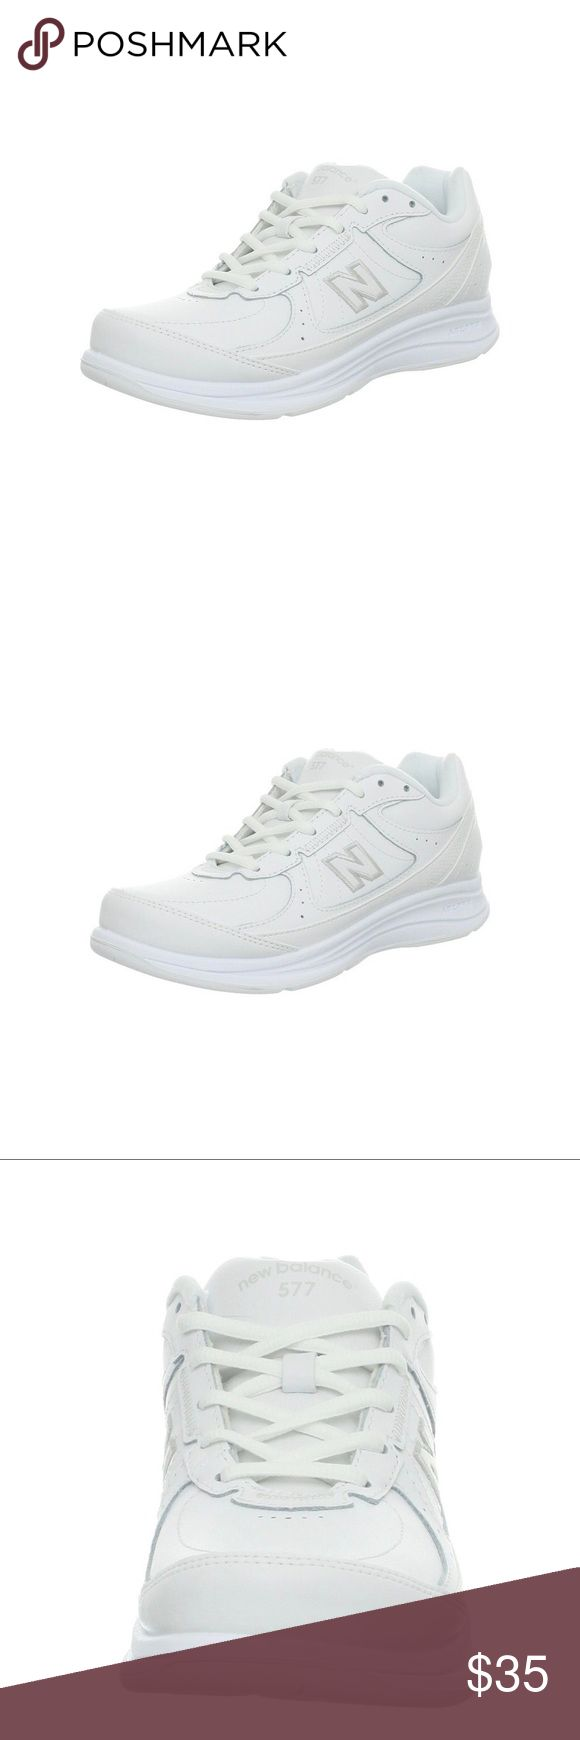 New Balance Women's WW577 Walking Shoe This sneaker is not only made for walking, the WW577 from New Balance is also made to keep you comfortable. The supple leather upper is both breathable and durable, plus two hook-and-loop adjustable straps ensure a nice snug fit. But it's when you stack up the miles that the true beauty of this shoe becomes evident, with cushioning at the insole and heel, plus a high-performance outsole for maximum traction on and off the trail. New Balance Shoes…